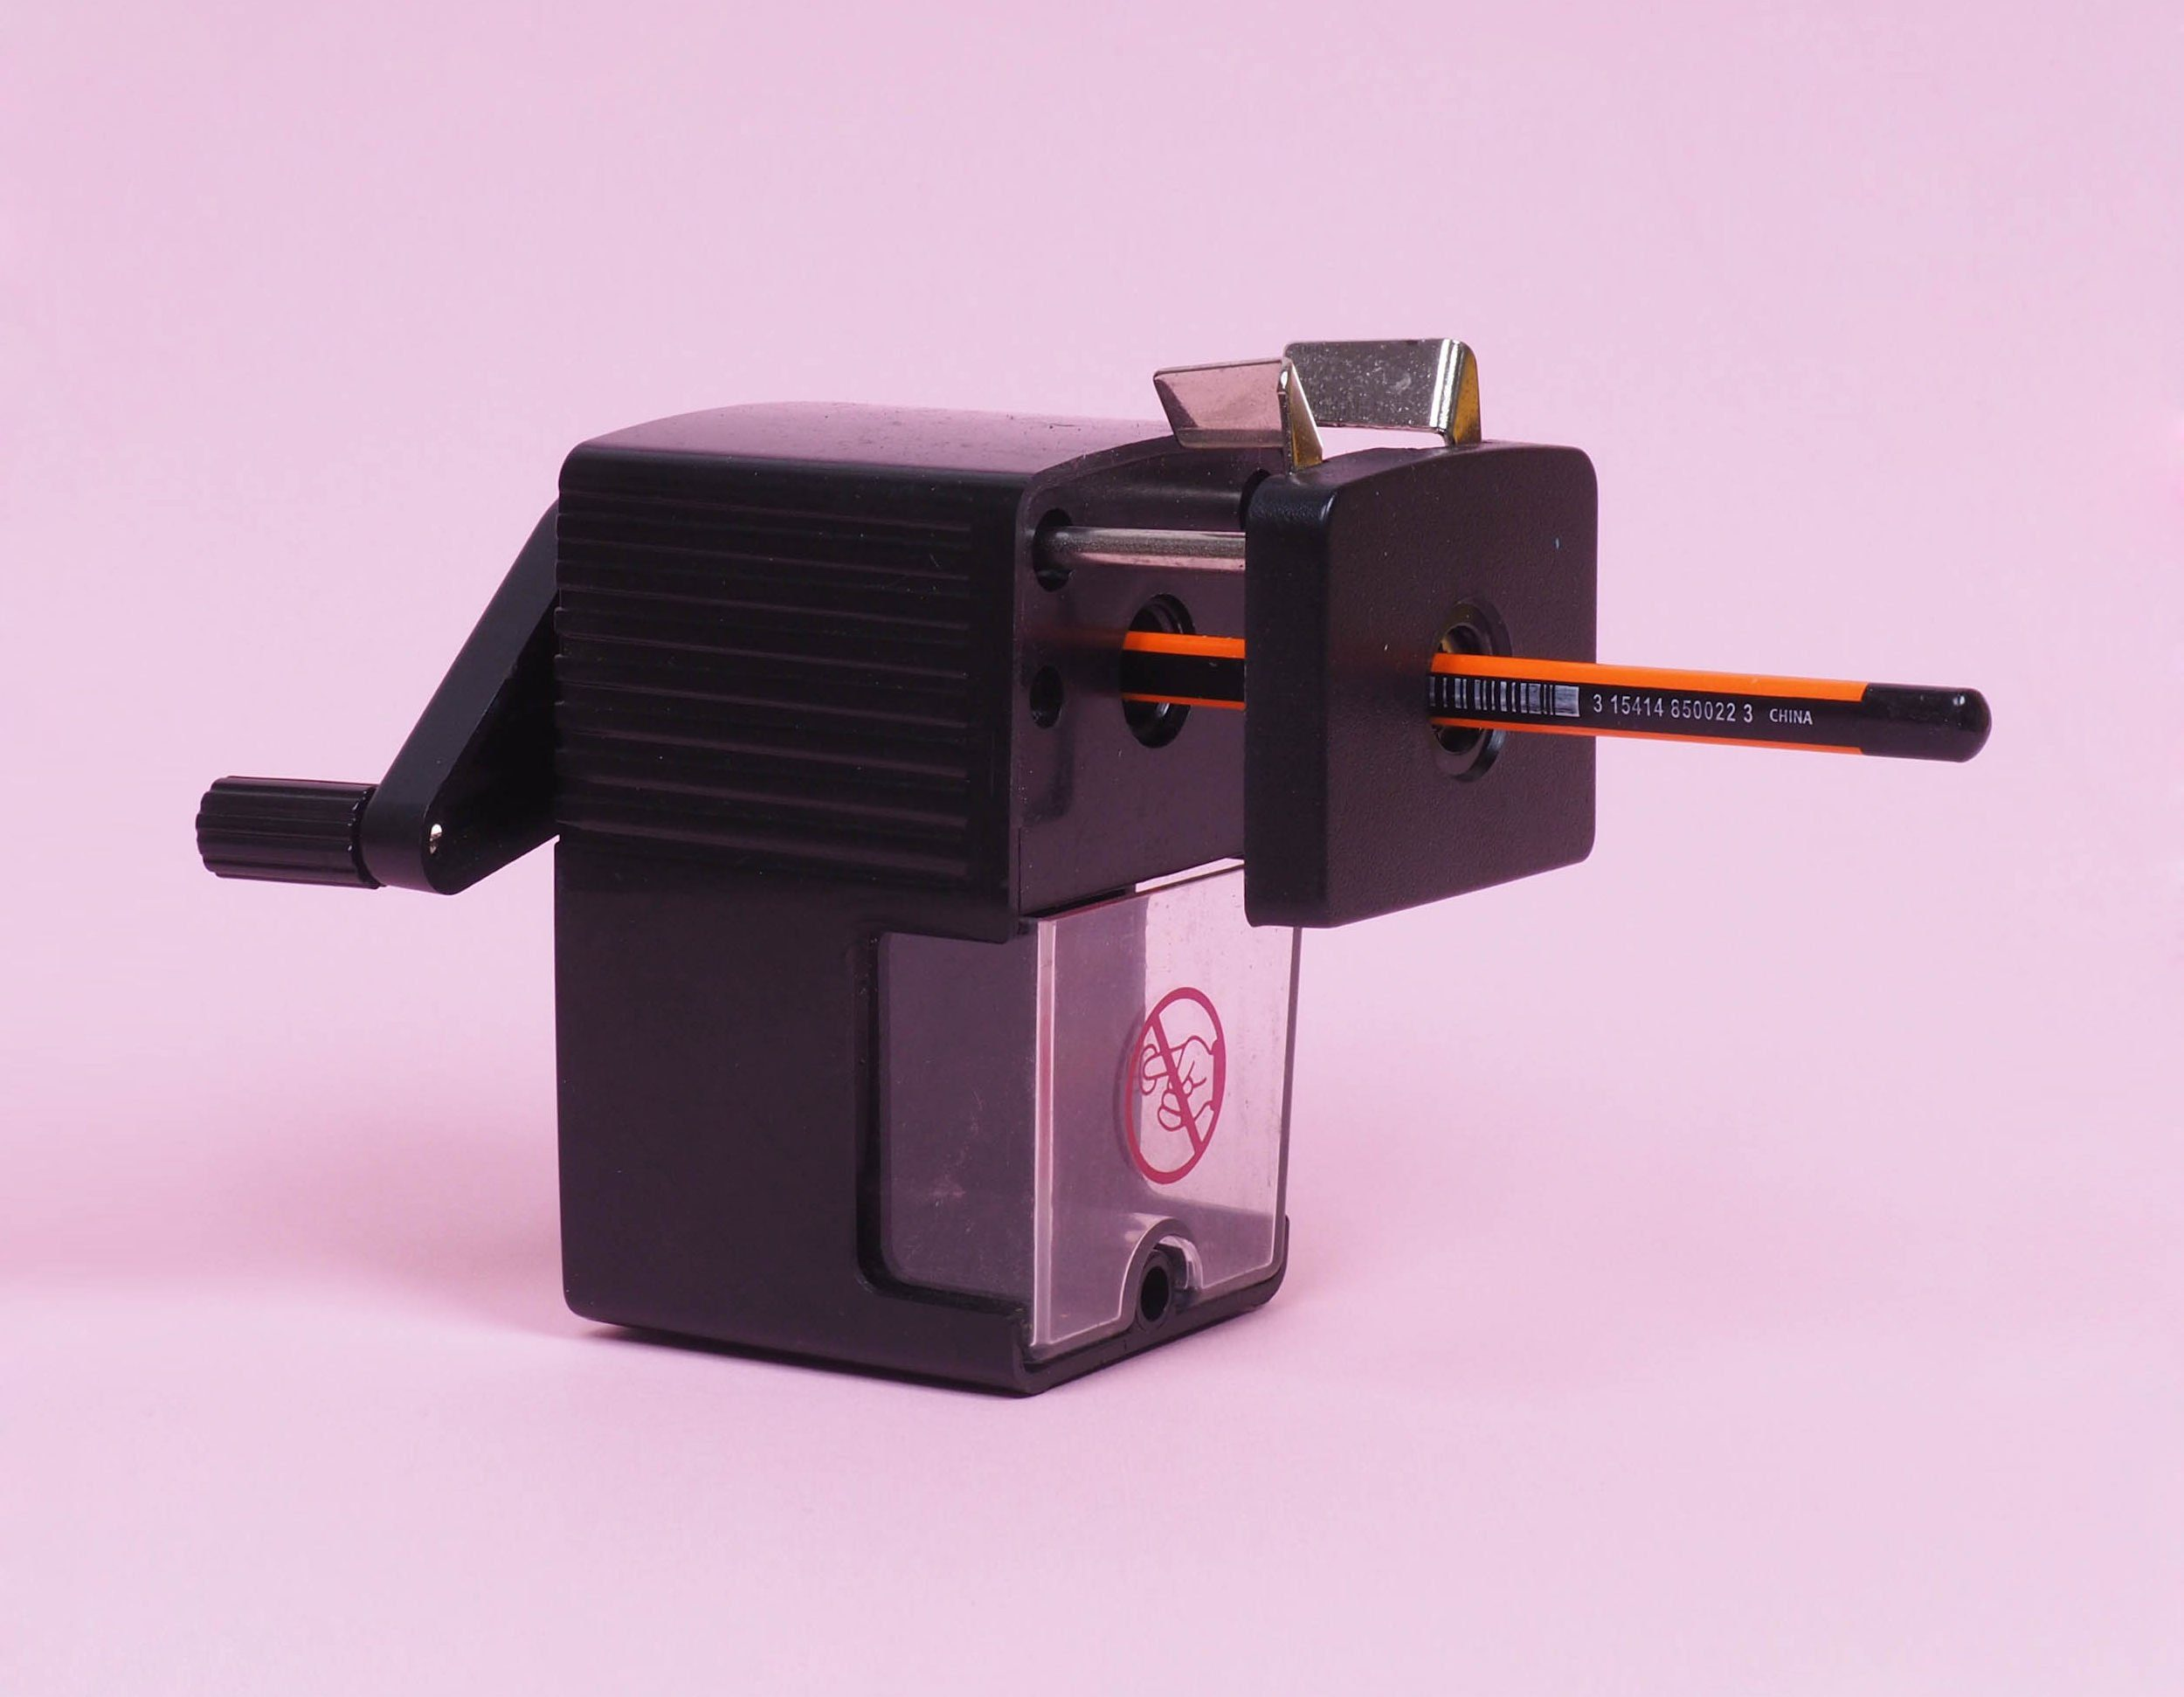 Vintage black pencil sharpener in bright pink background. Retro look pencil sharpener for school and office work.